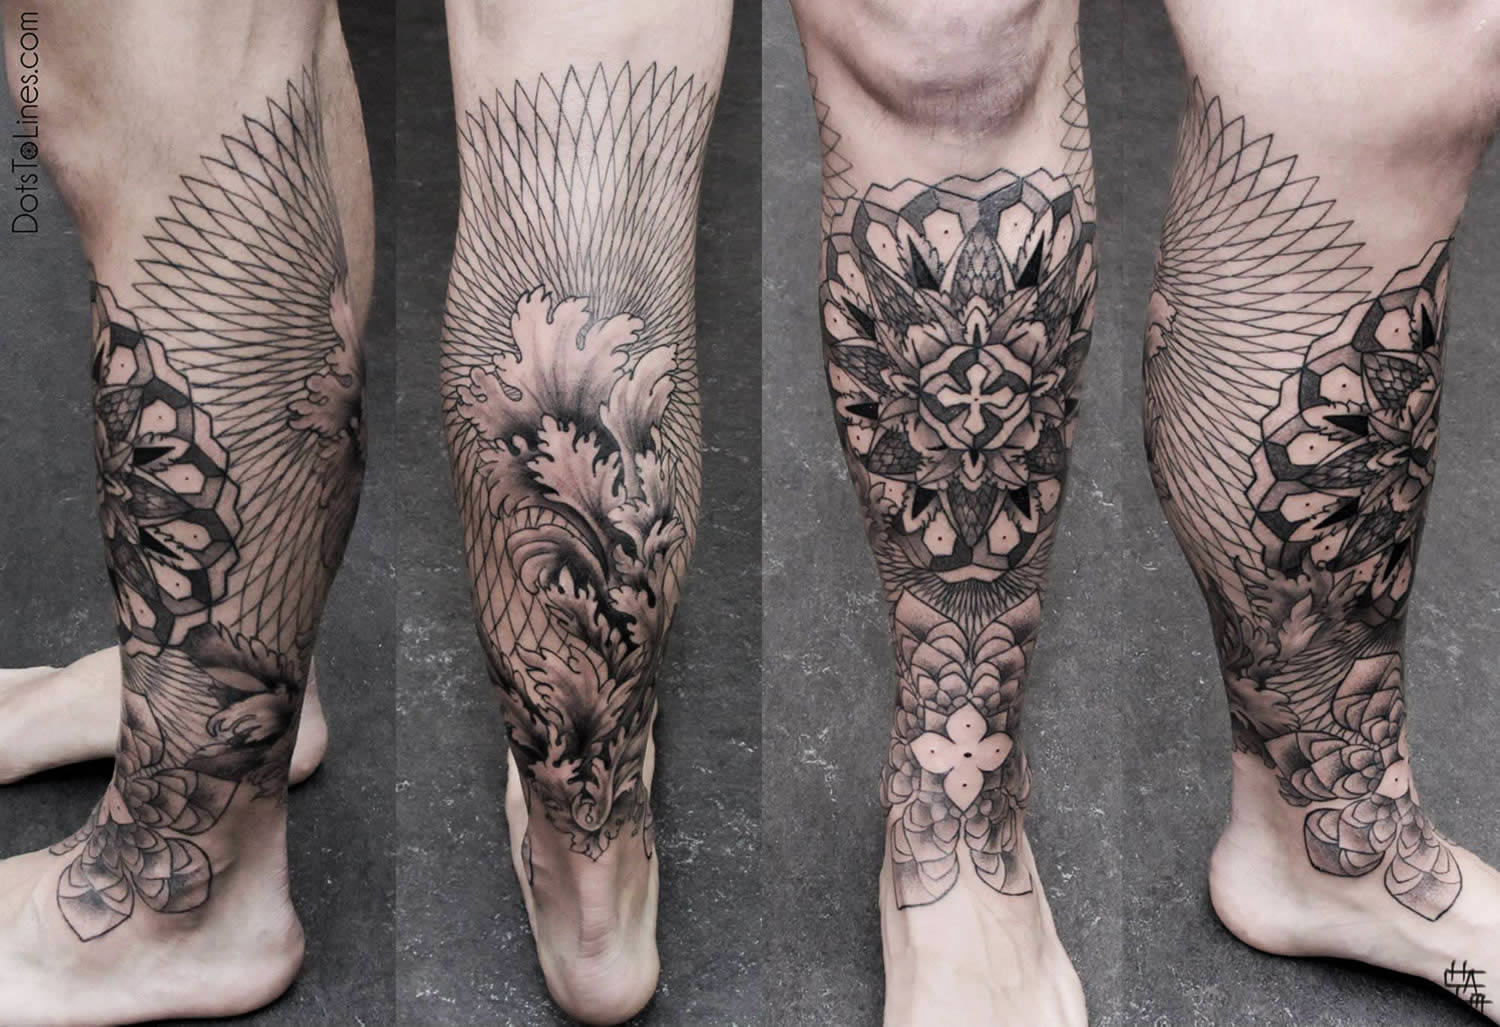 tattoo on leg by chaim machlev, 2014